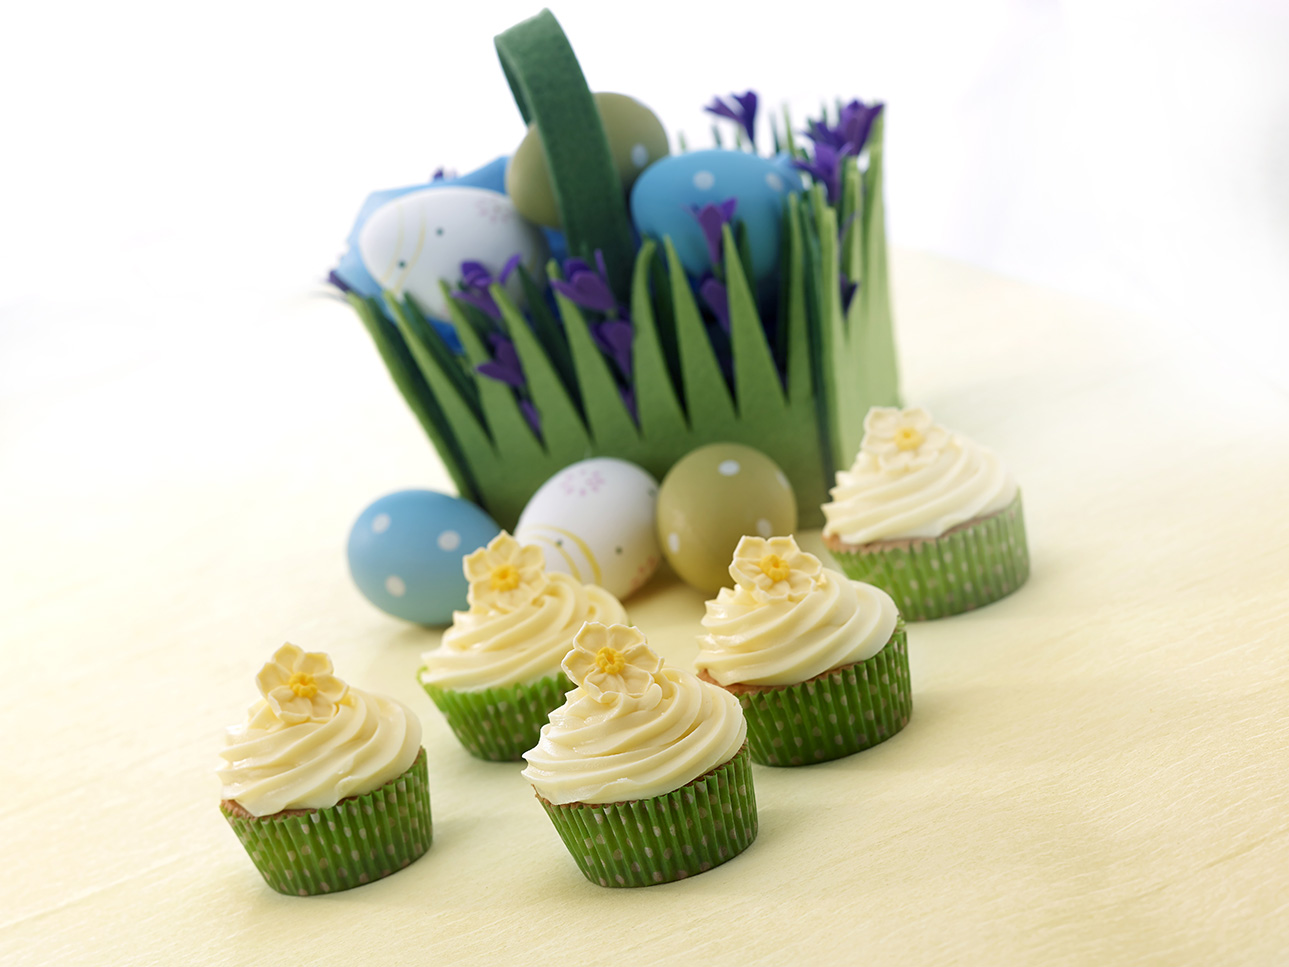 Daffodil Cupcakes: Spring Baking With The Children